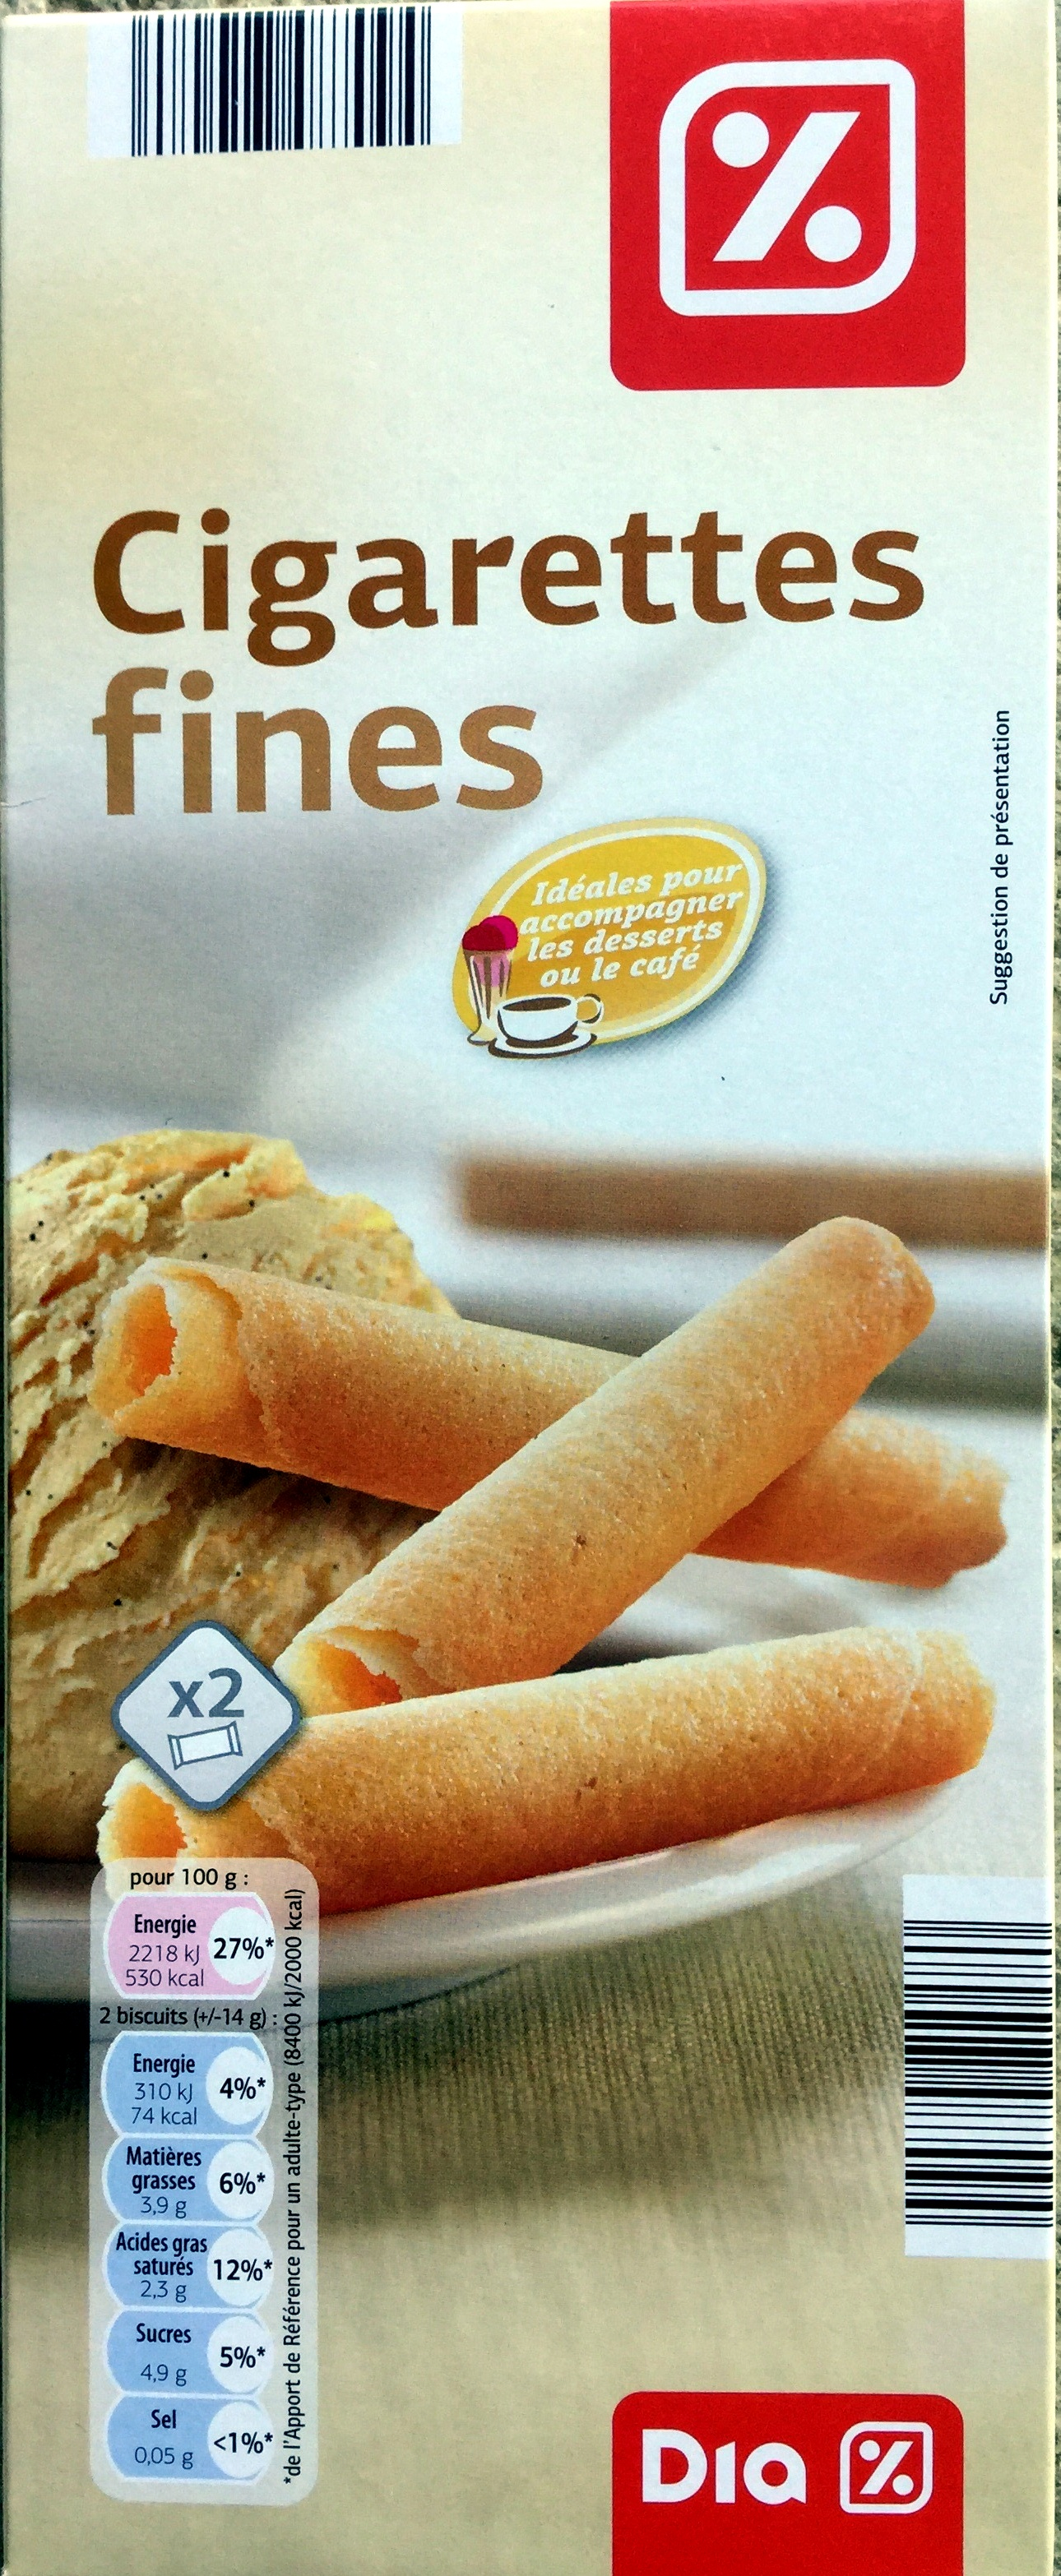 Cigarettes fines - Product - fr